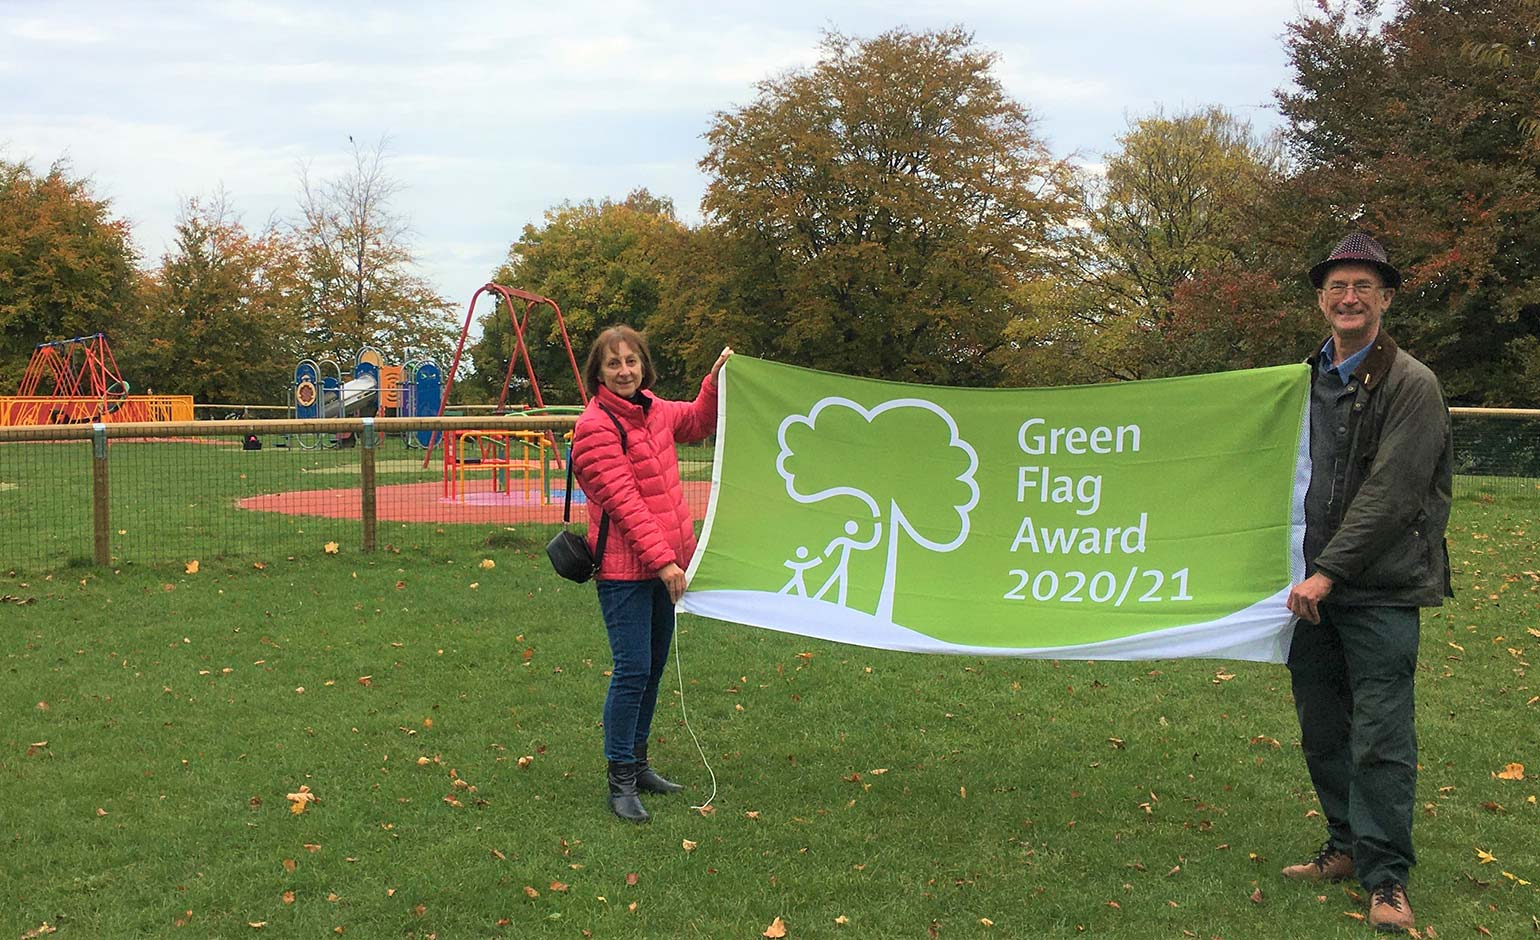 Five parks across Bath recognised with international Green Flag awards